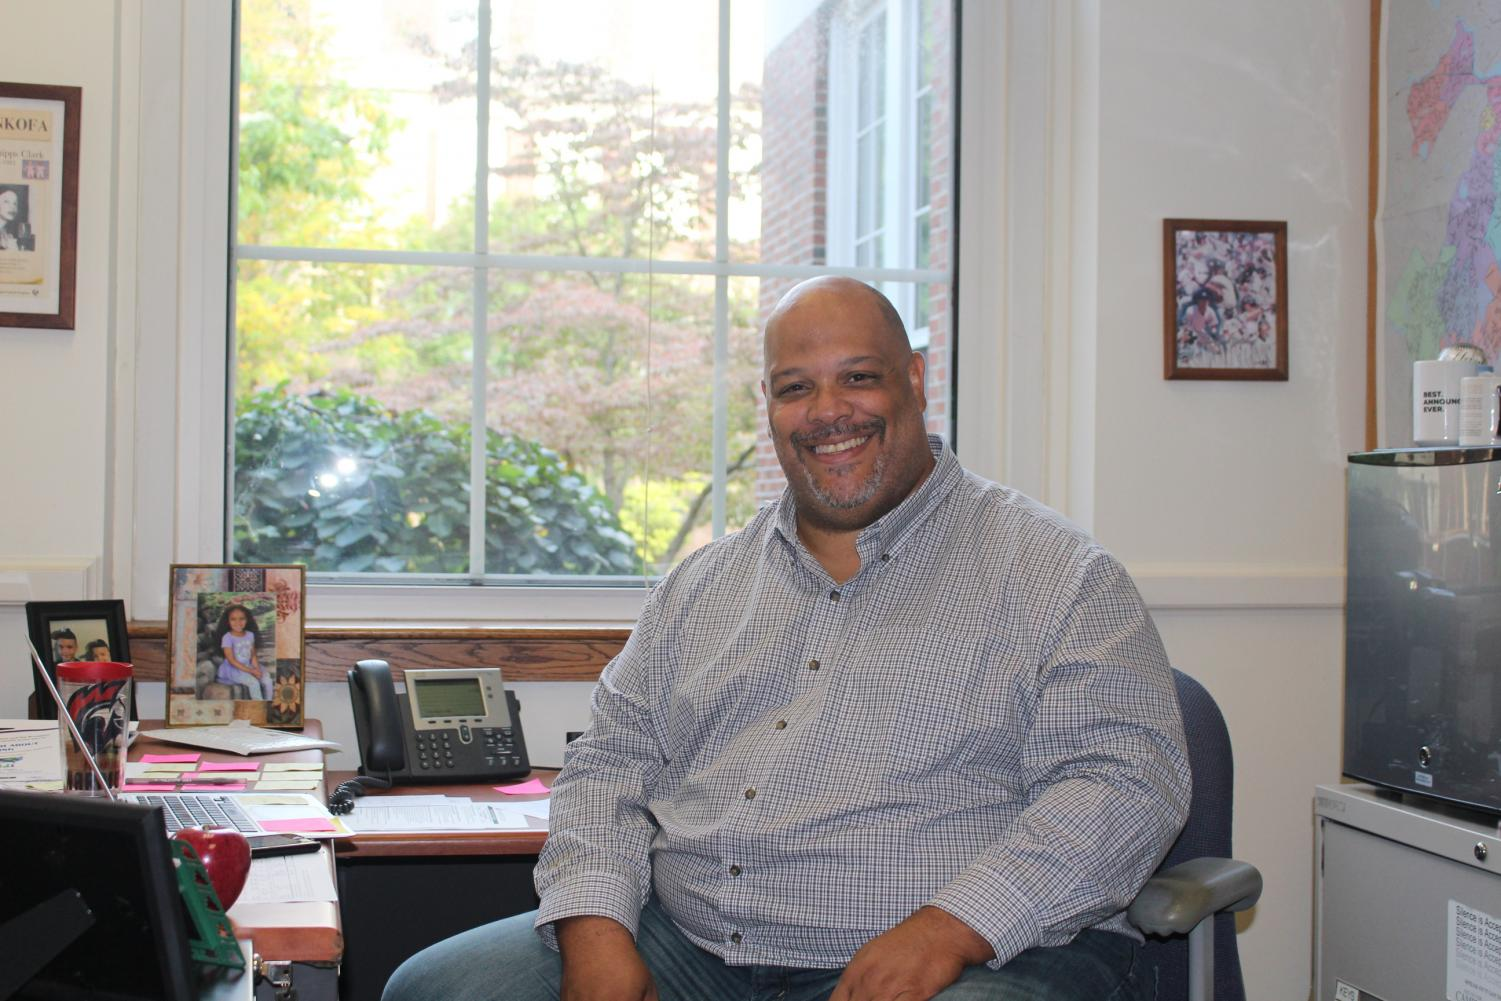 J. Malcolm Cawthorne said he looks forward to forming bonds with his students. Cawthorne has worked in the social studies department for many years and is now the METCO coordinator.